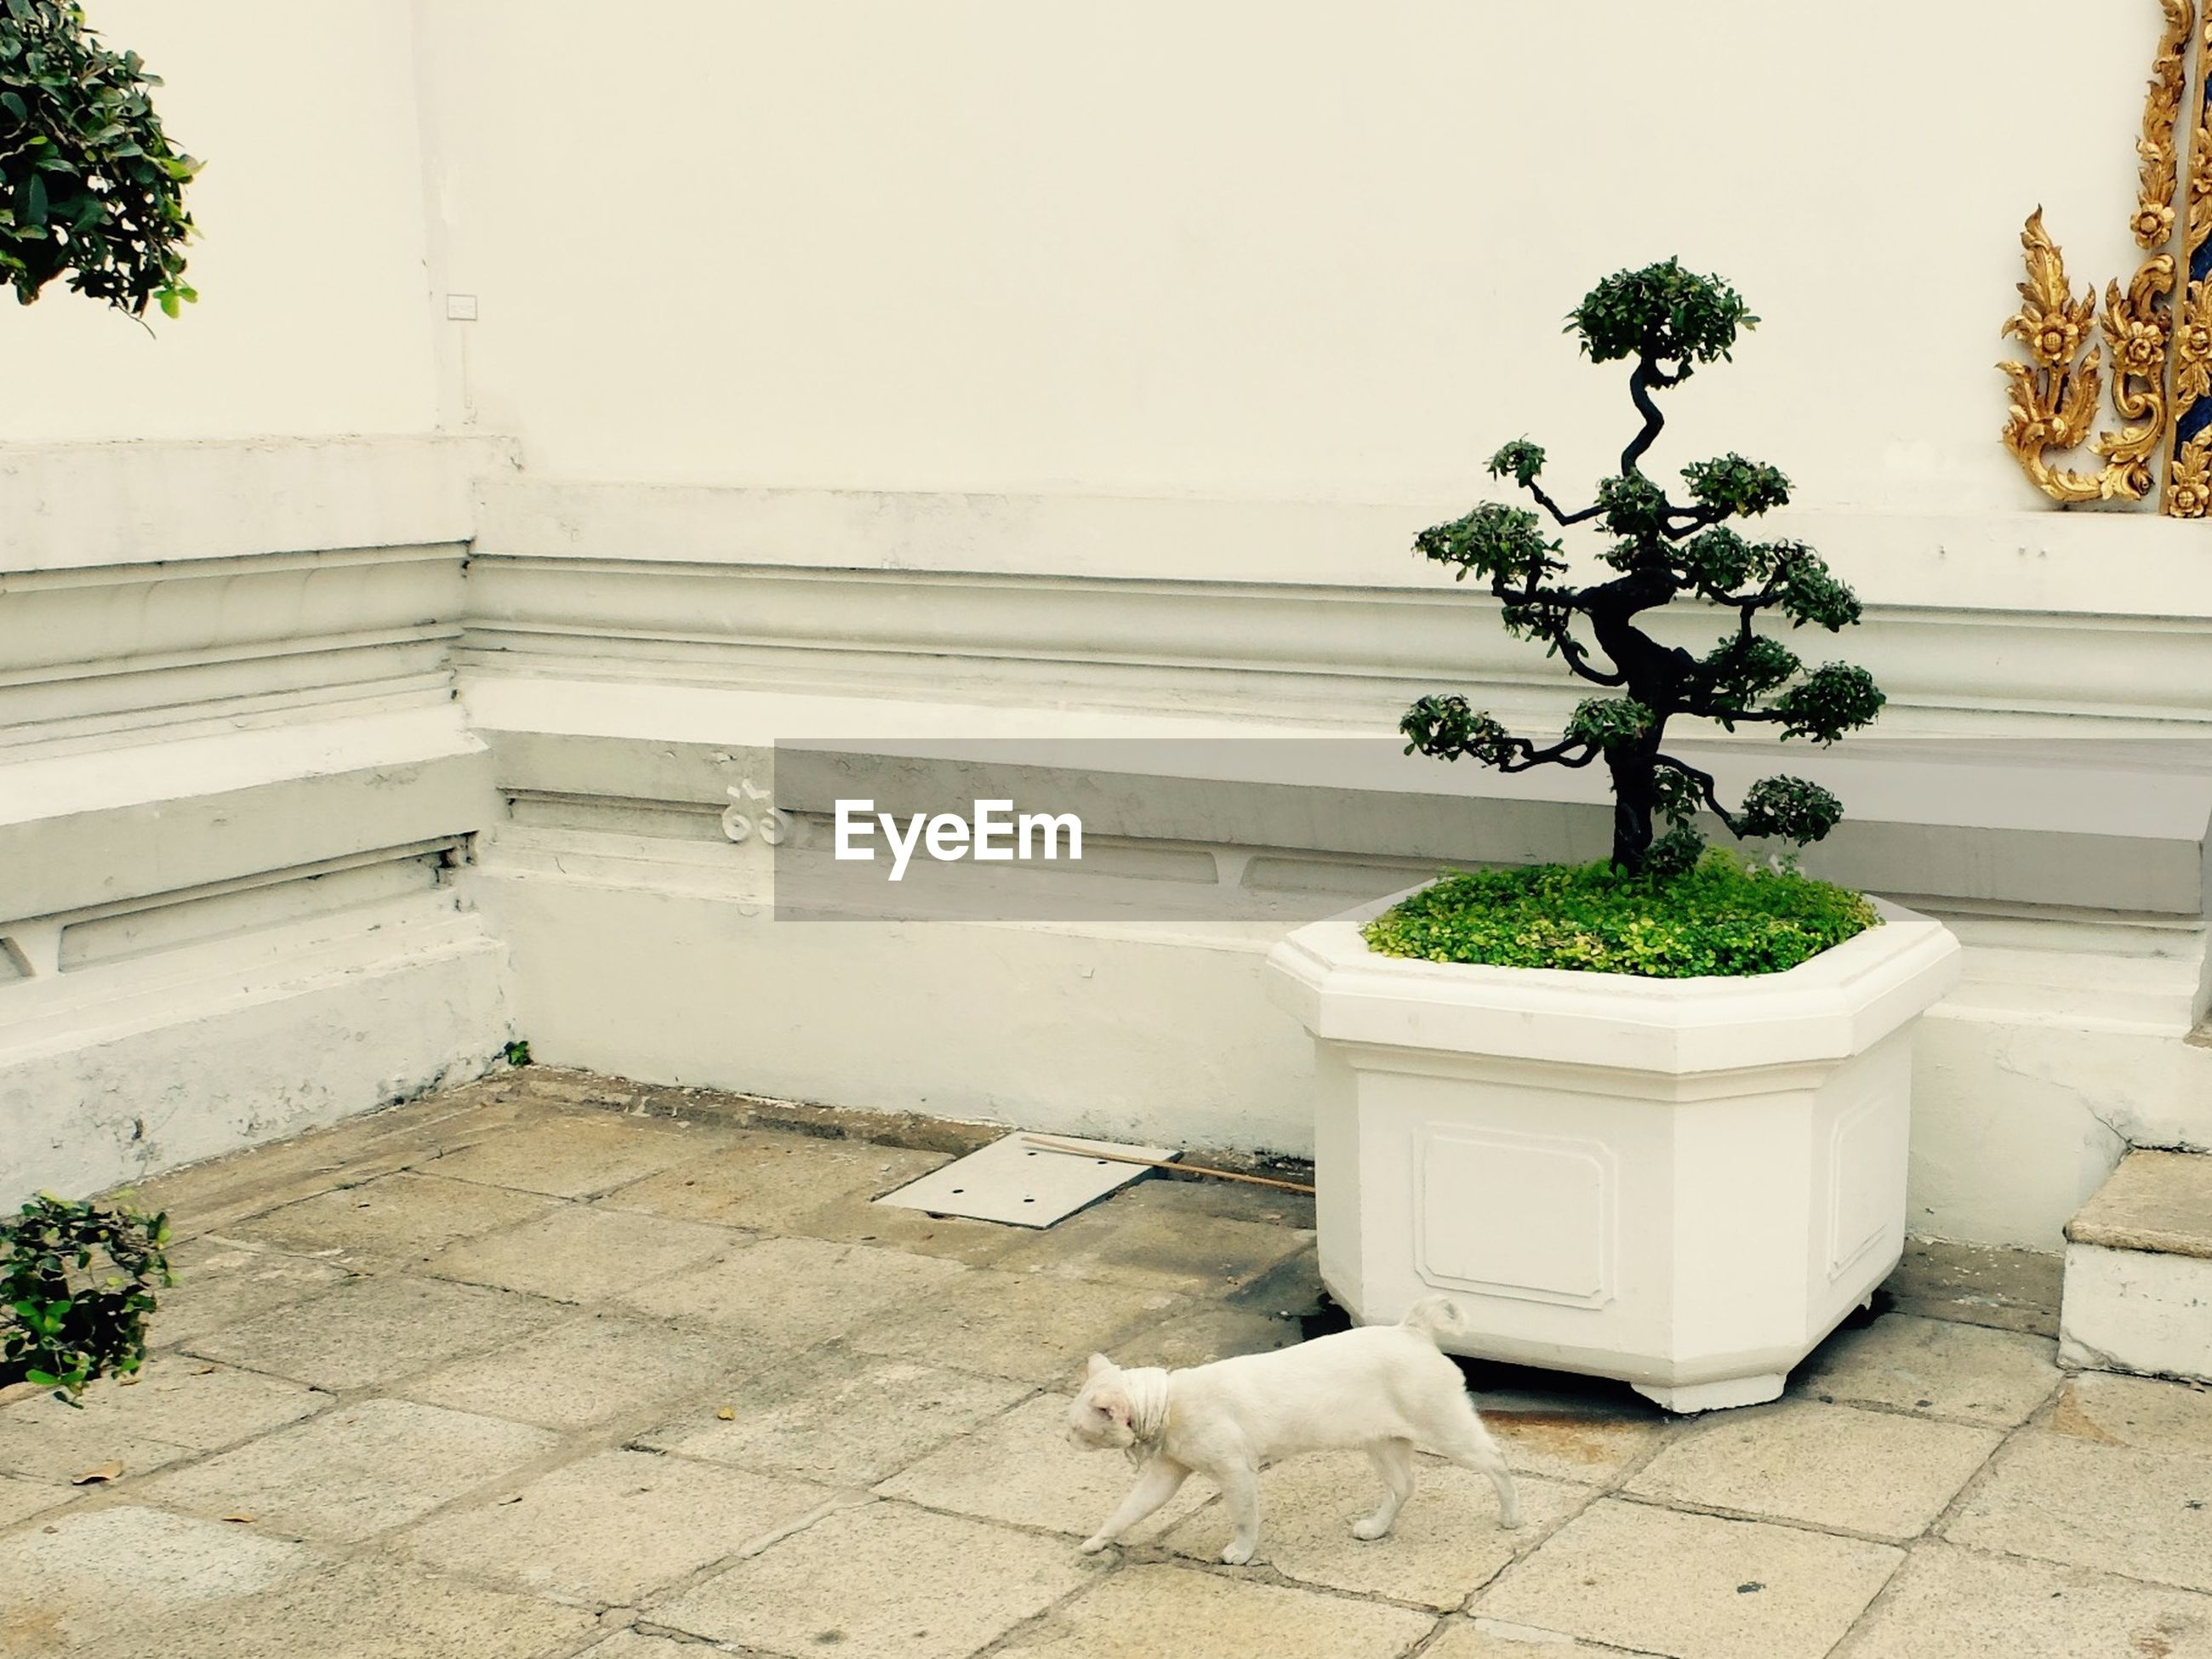 Cat walking by potted plant against white wall